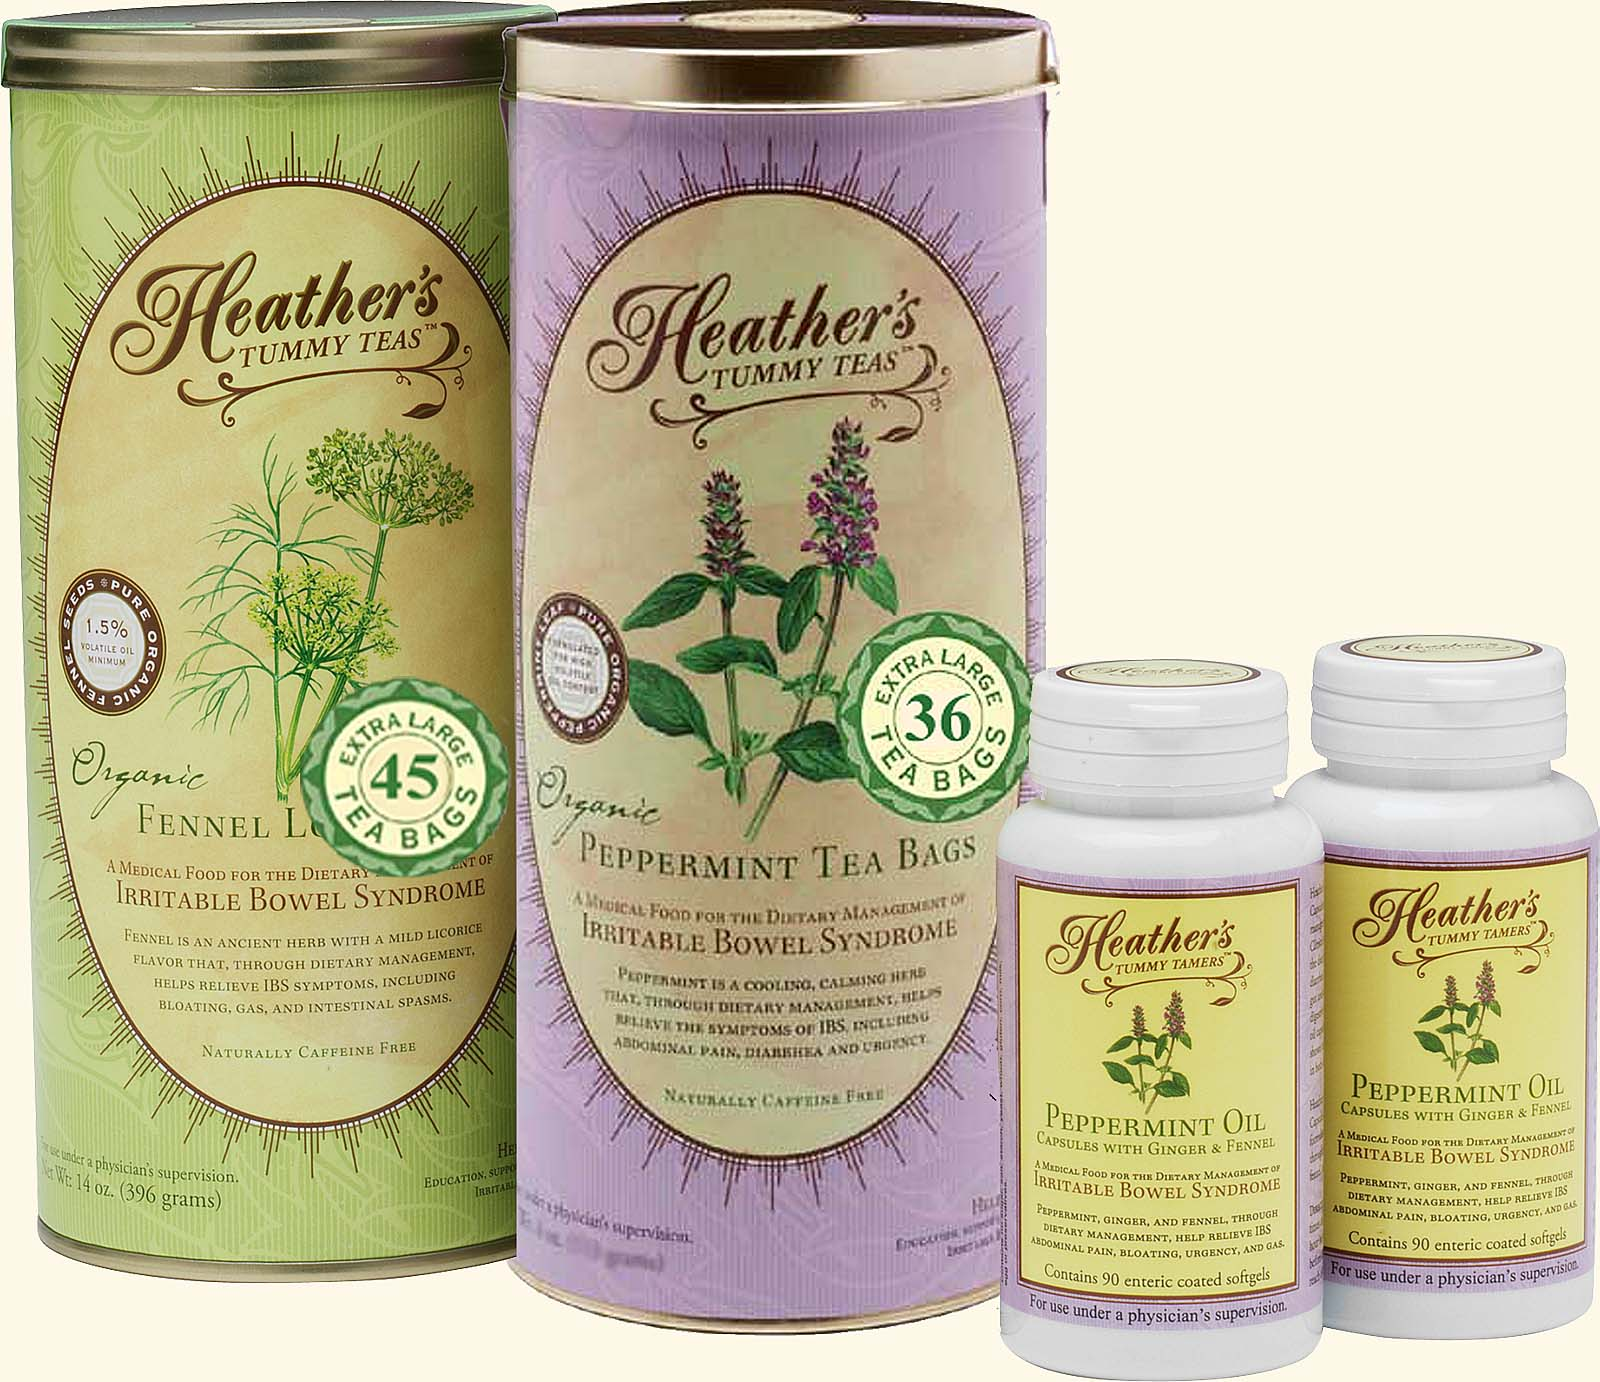 Tummy Teabag Kit<br>Peppermint & Fennel TEABAGS<BR> Peppermint Caps